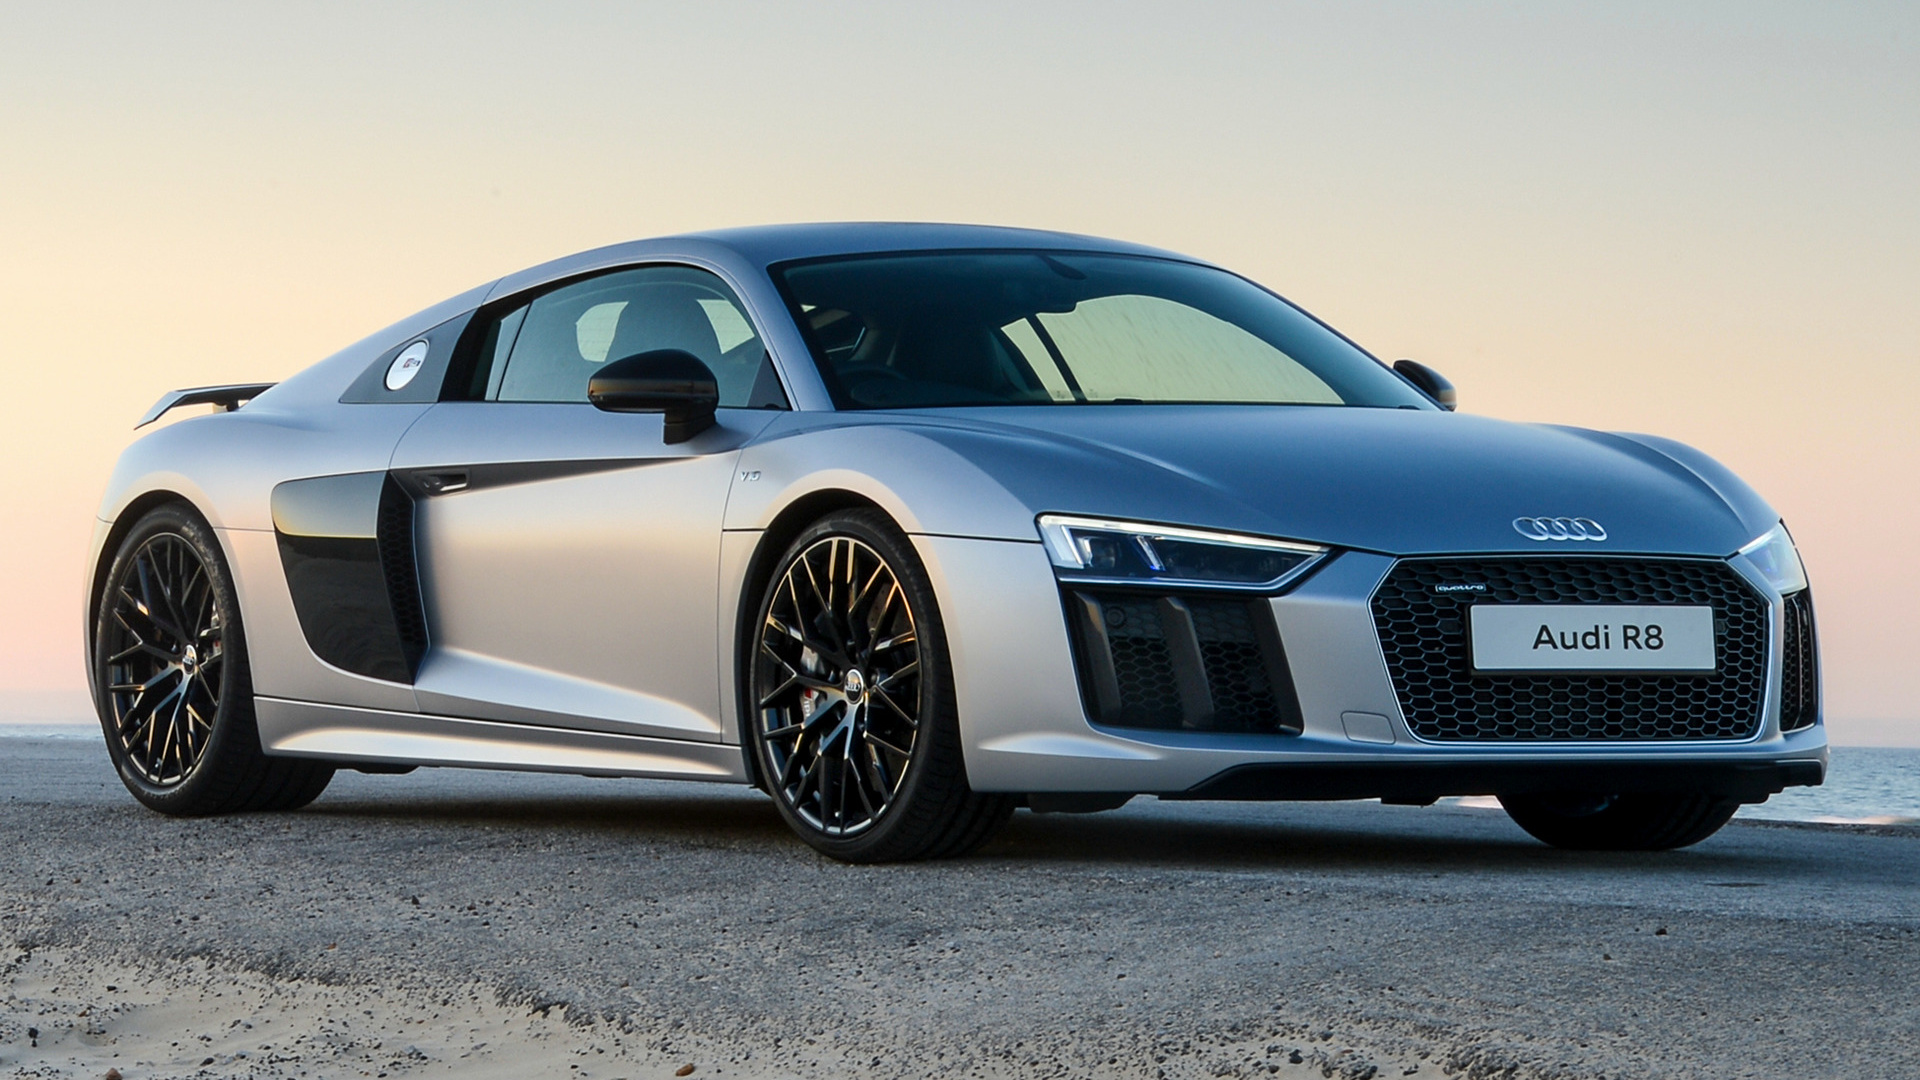 2016 Audi R8 V10 plus Full HD Wallpaper and Background Image | 1920x1080 | ID:906809